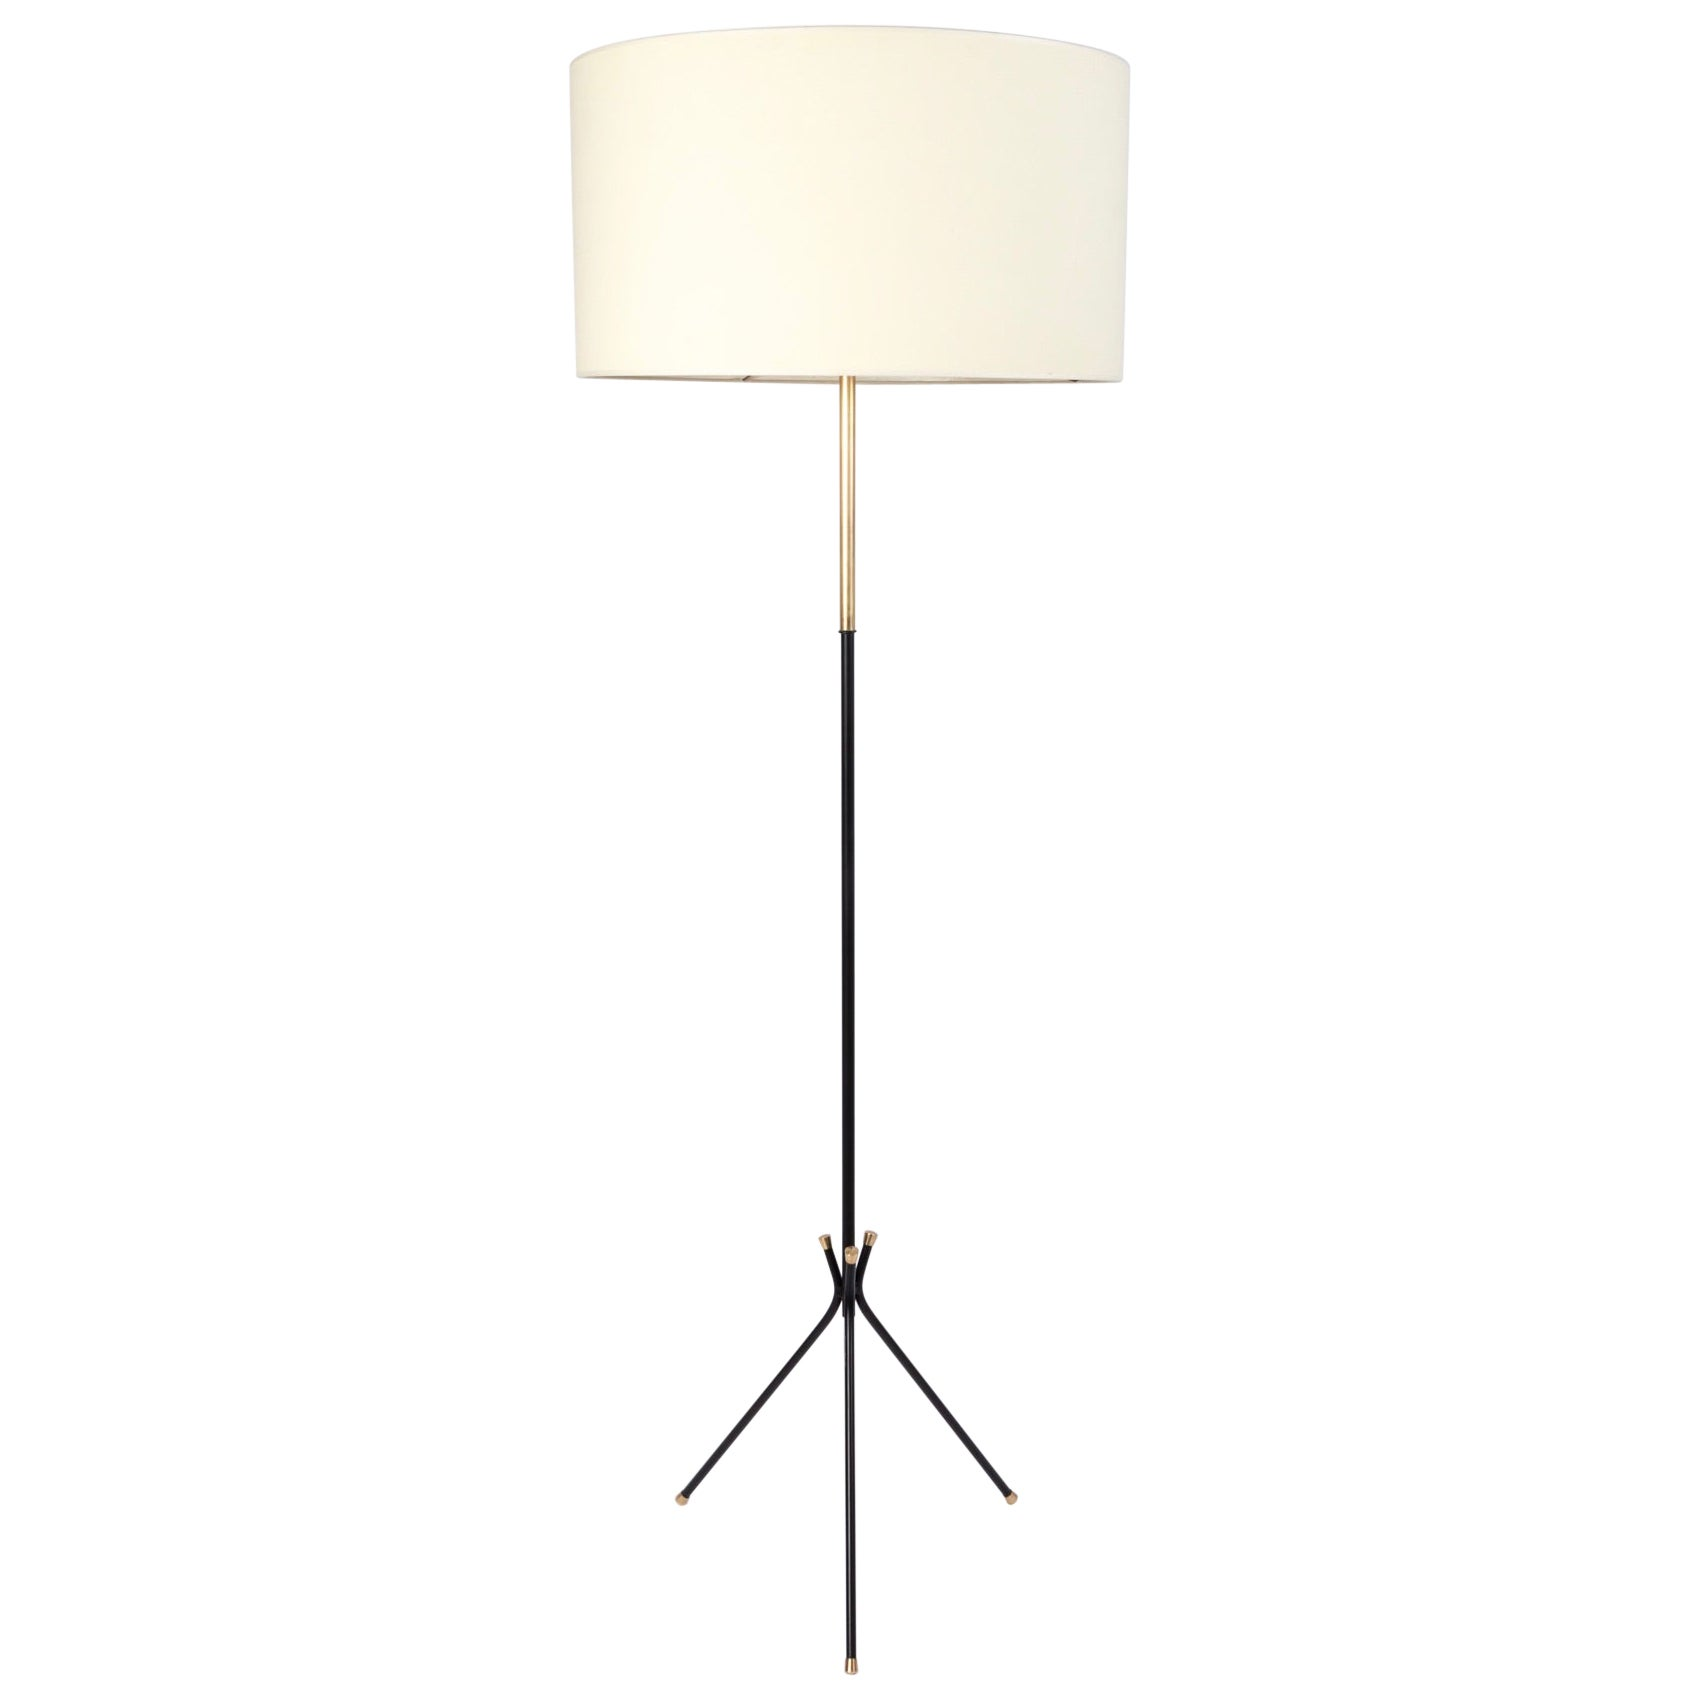 1950 Floor Lamp by Maison Arlus